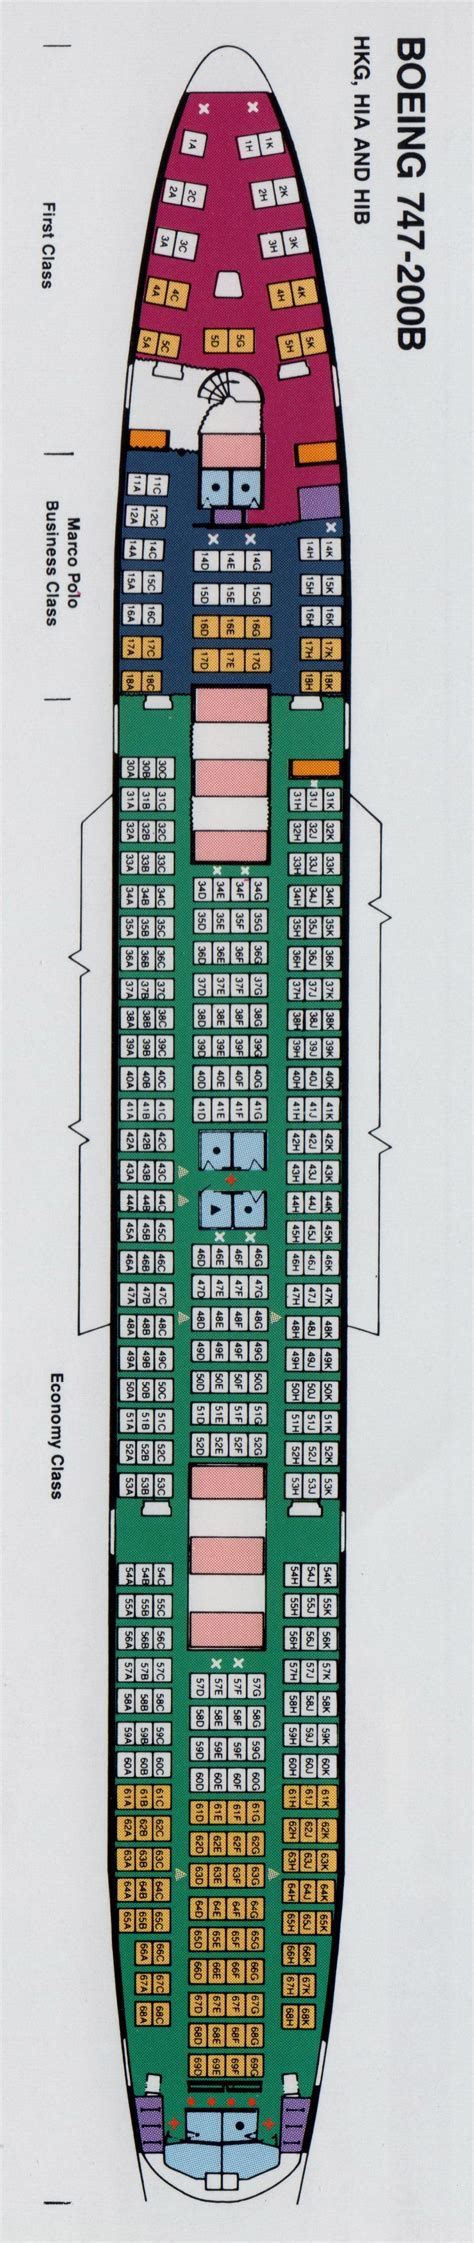 Cathay 77w seating chart